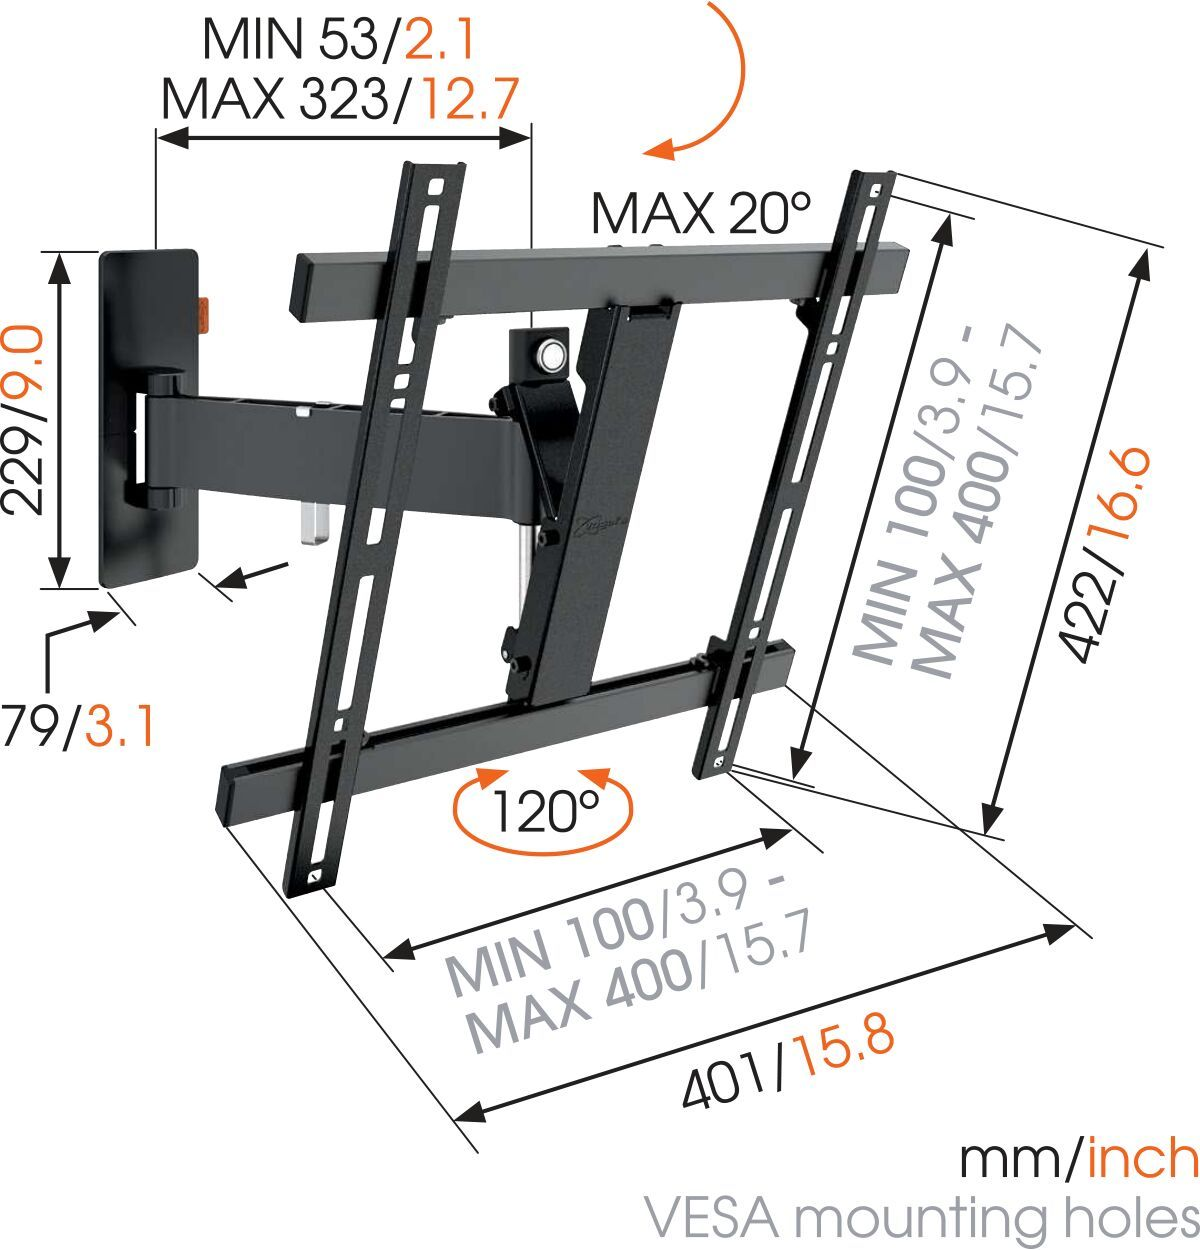 Vogel's WALL 2225 Full-Motion TV Wall Mount (black) - Suitable for Motion (up to 120°) - Suitable for Tilt up to 20° - Suitable for Dimensions